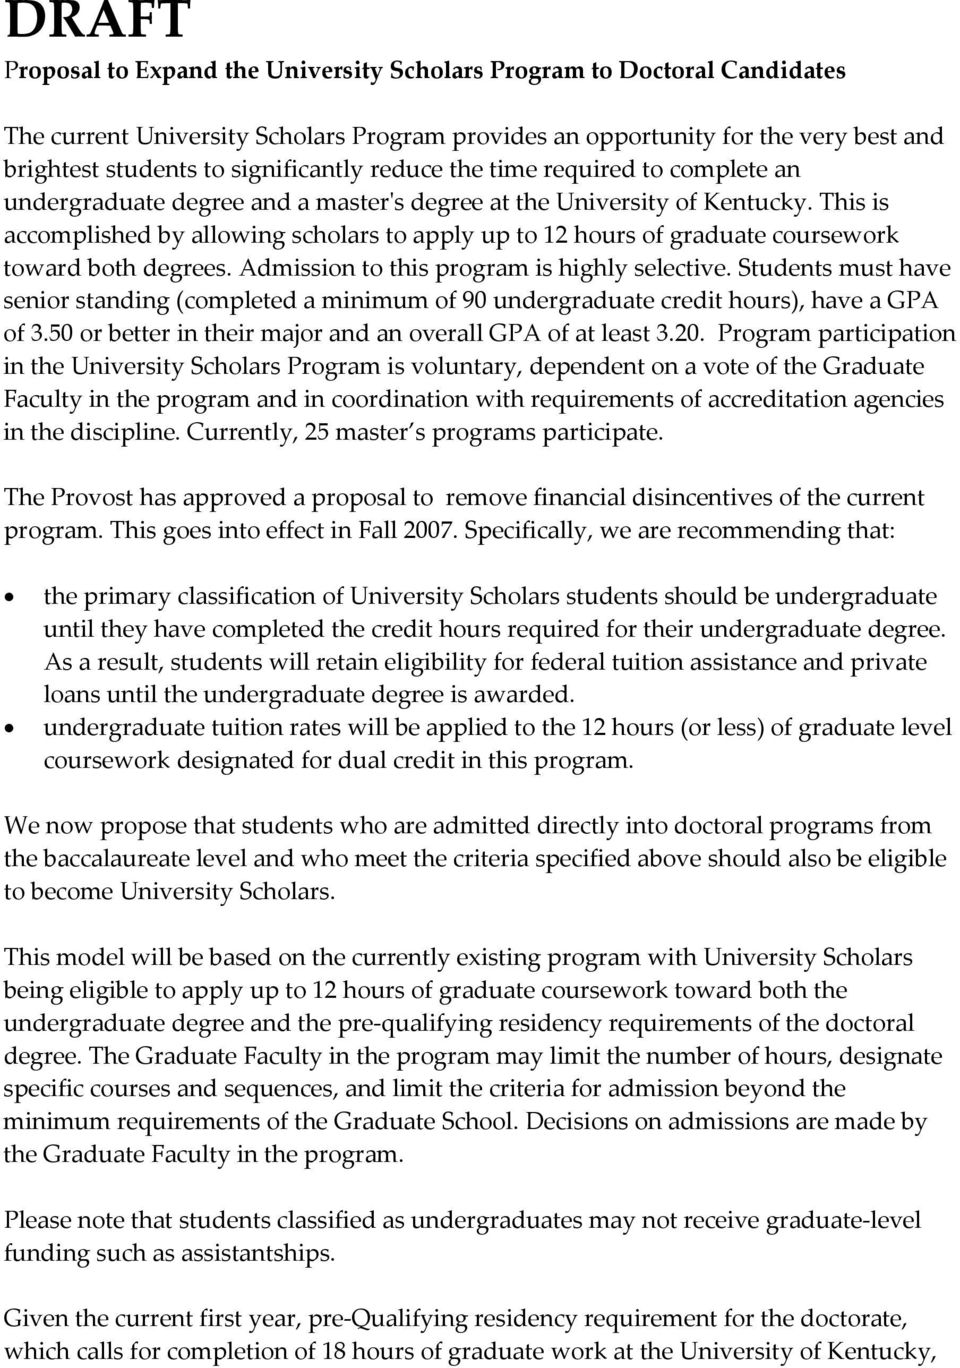 This is accomplished by allowing scholars to apply up to 12 hours of graduate coursework toward both degrees. Admission to this program is highly selective.